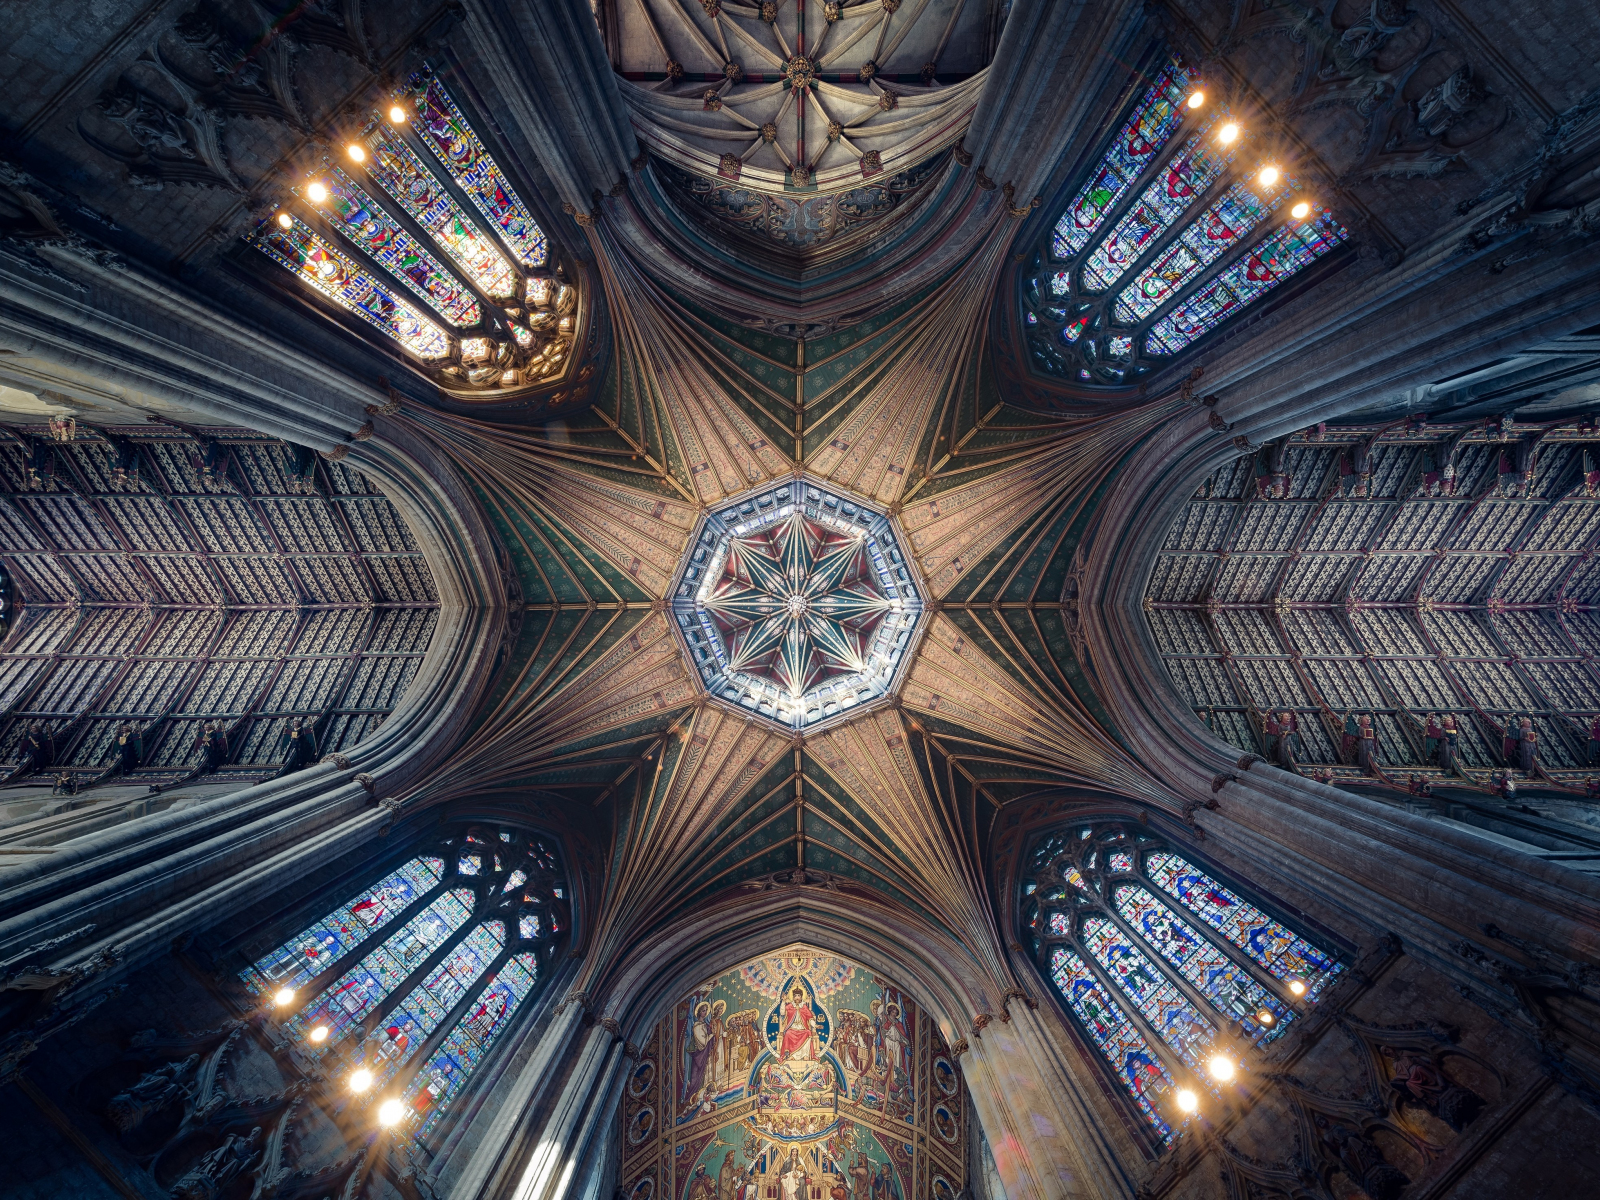 Ceiling, cathedral, symmetrical interior, architecture, 1600x1200 wallpaper